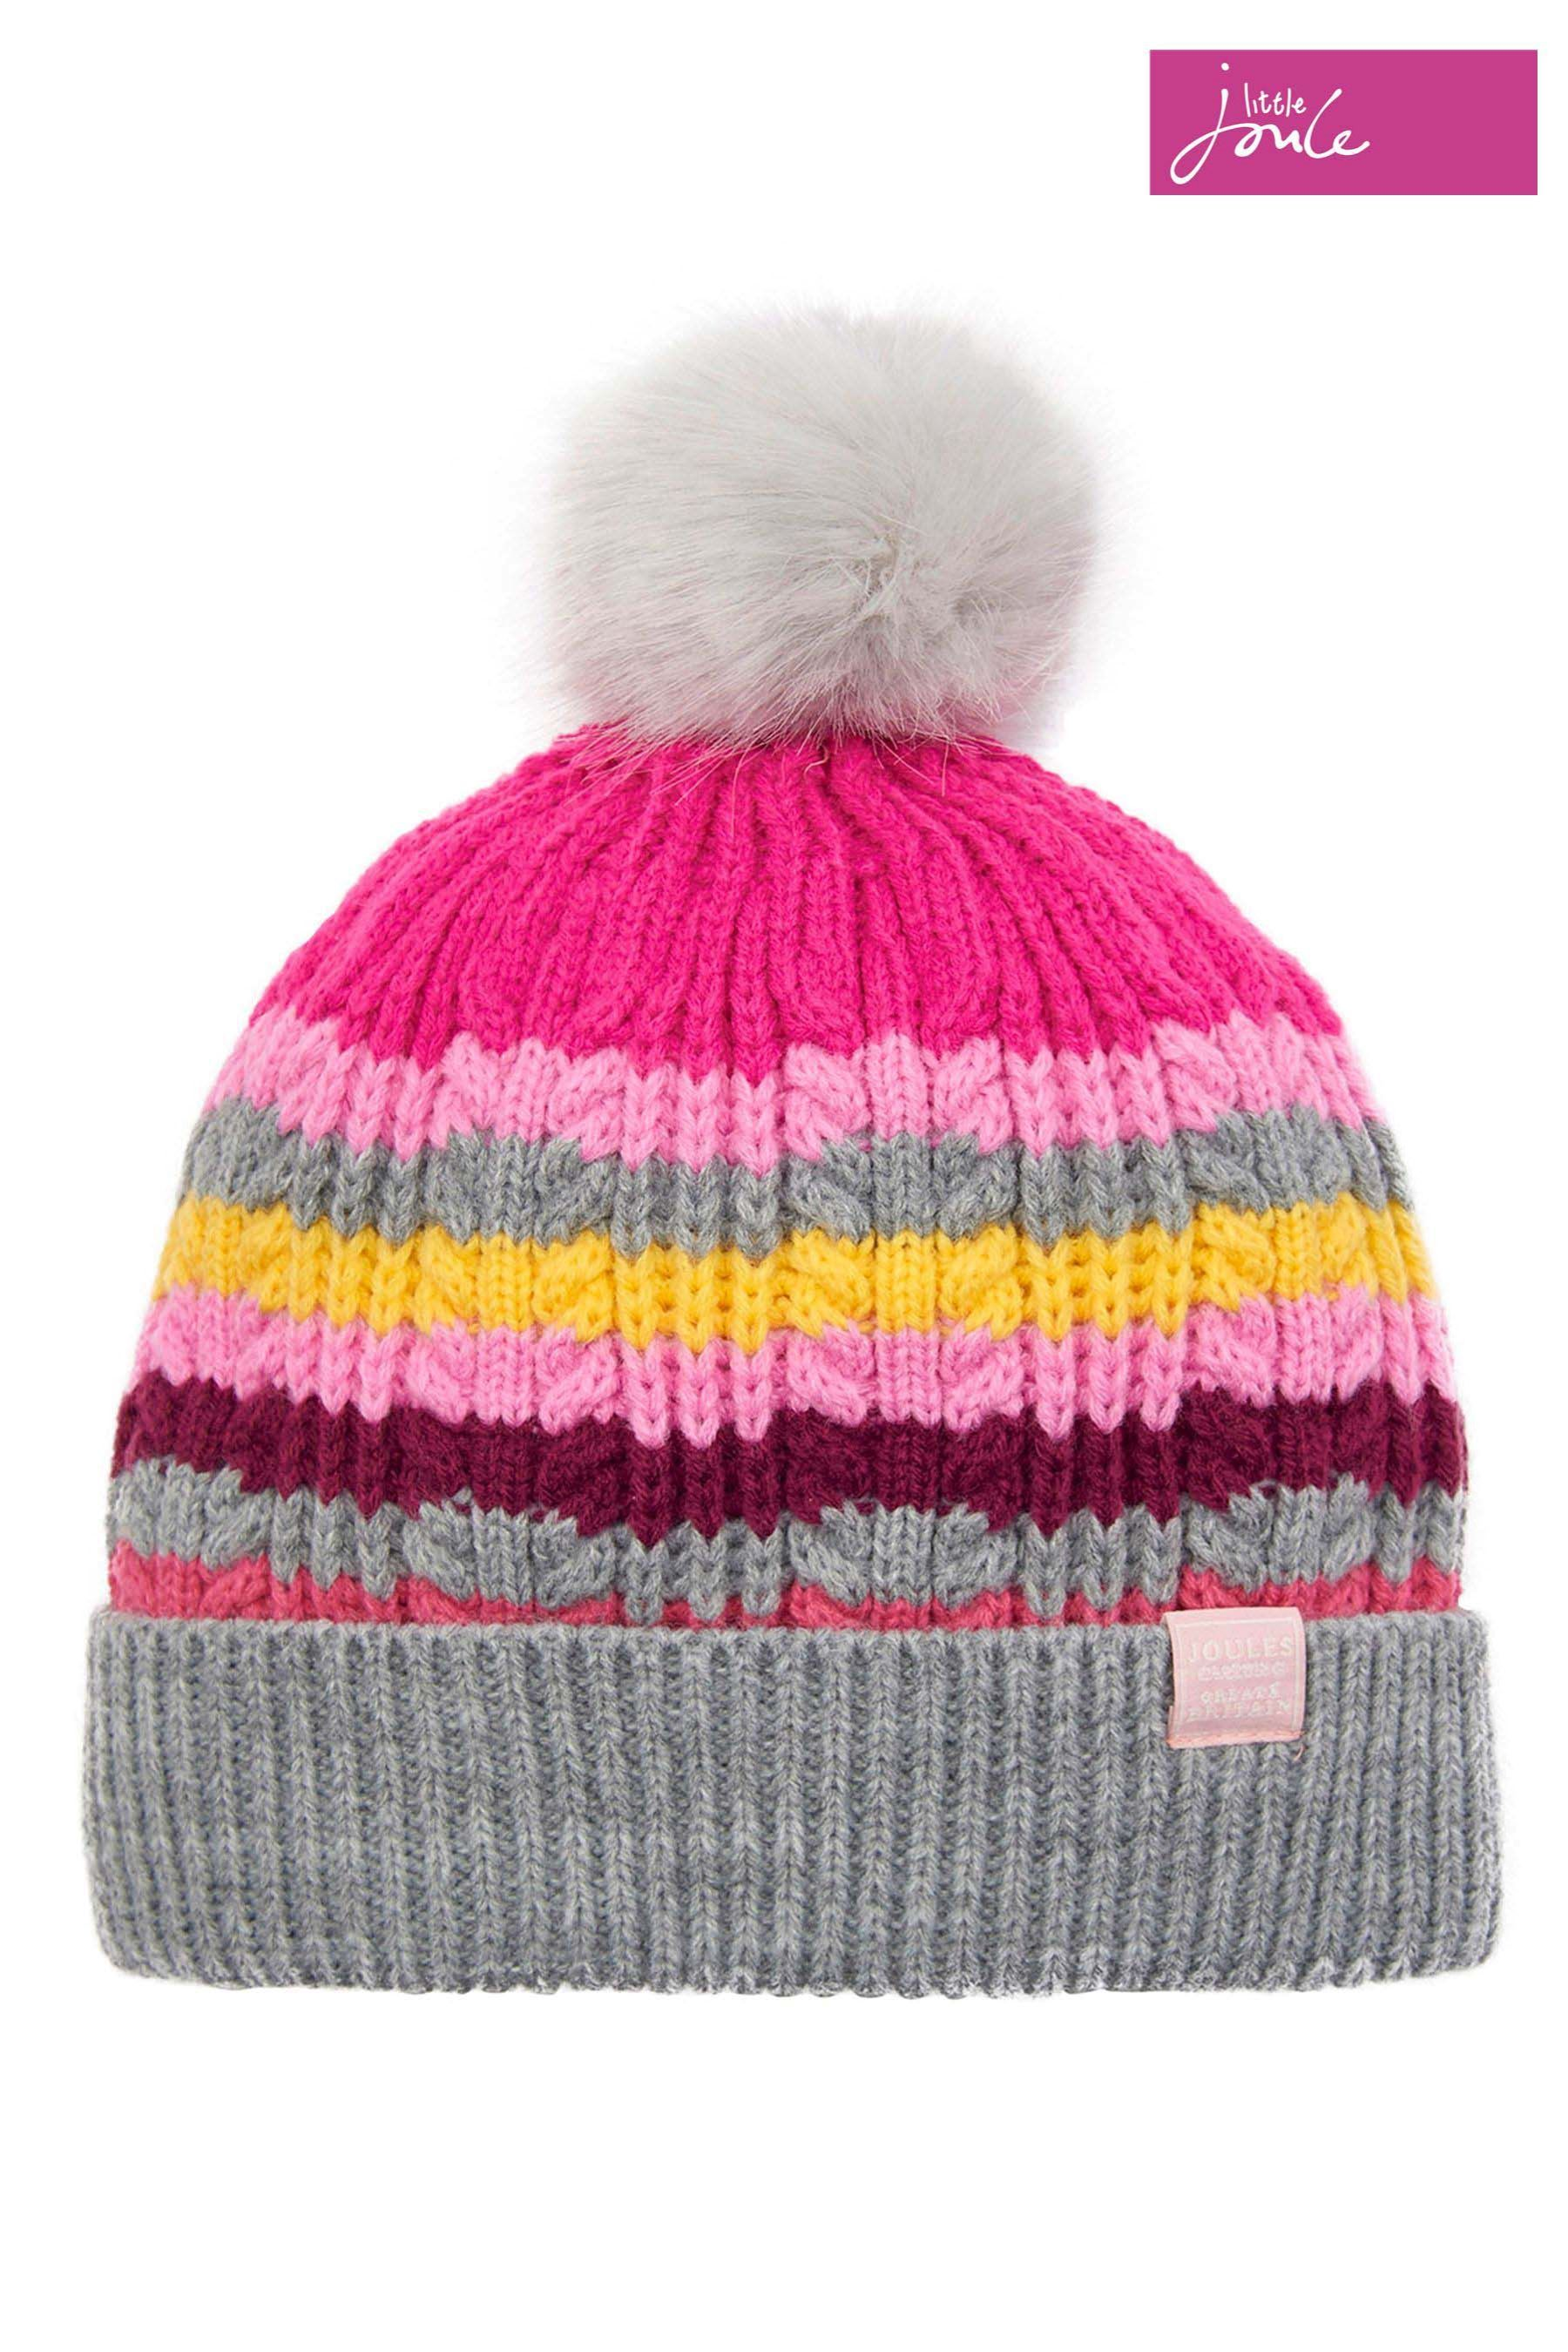 a2e1b952807 Girls Joules Multi Stripe Knitted Bobble Hat - Grey